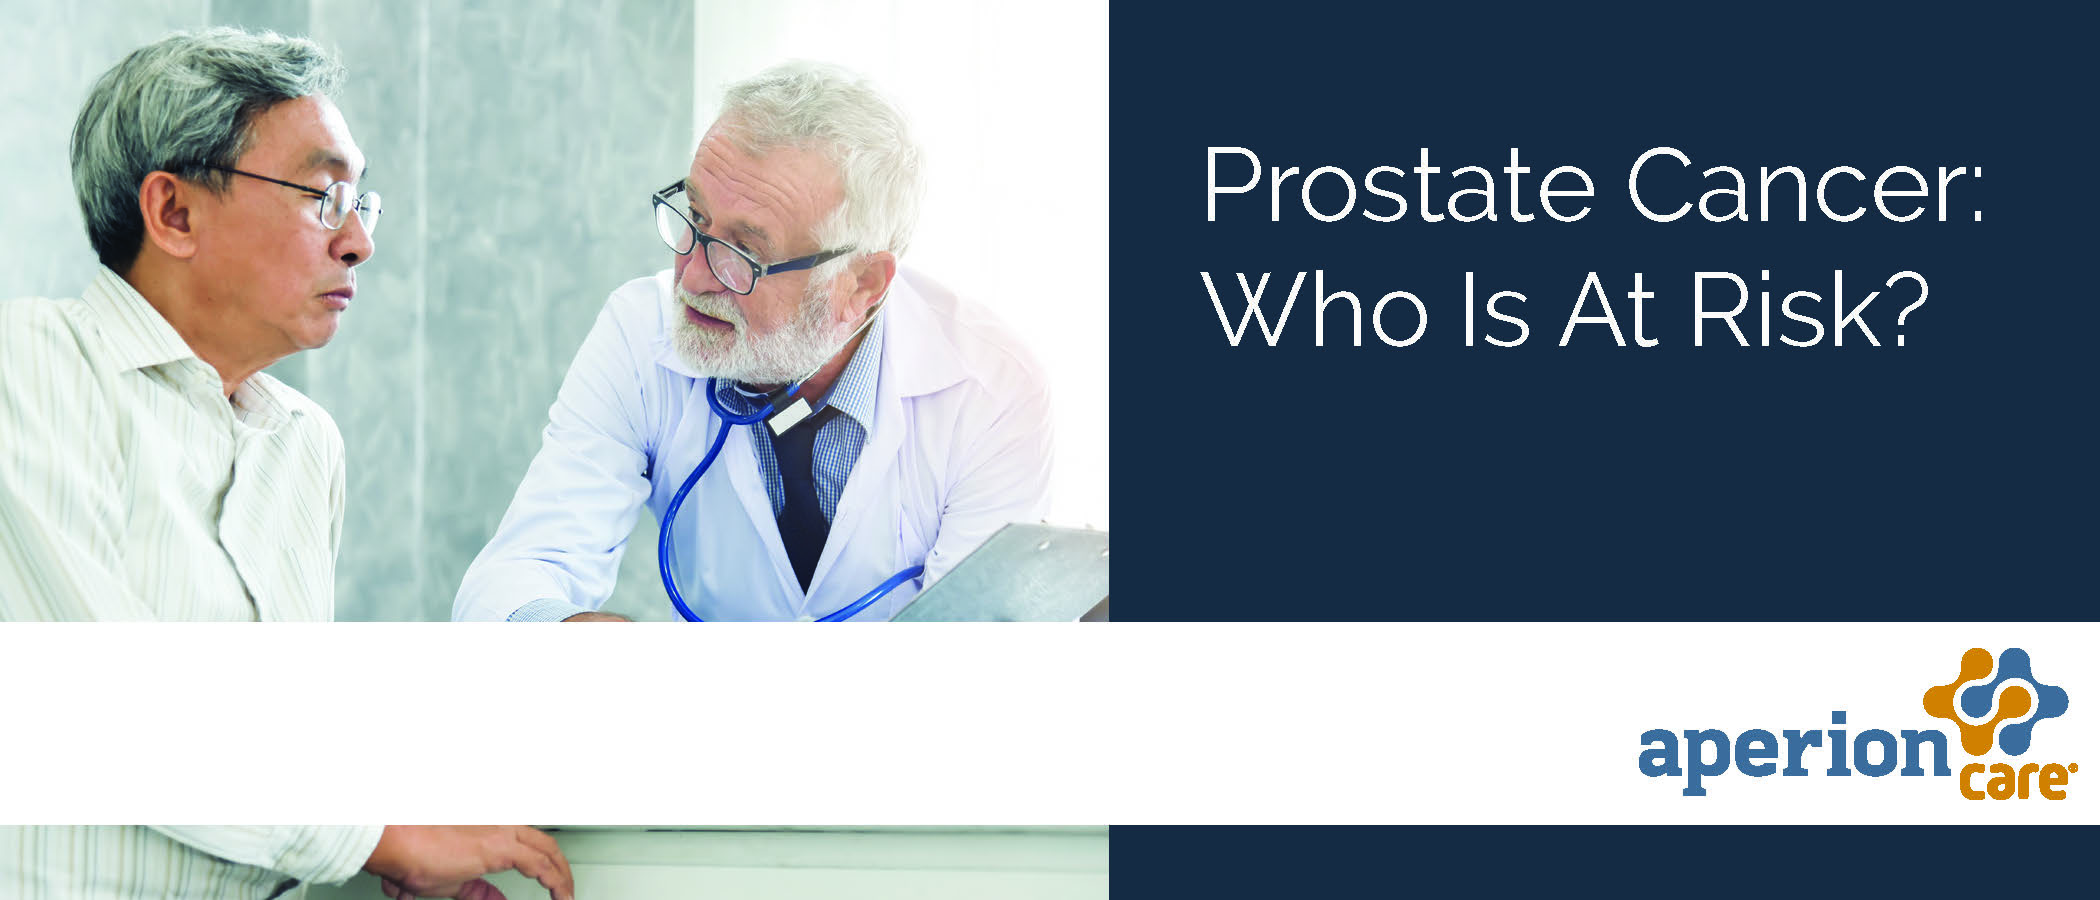 prostate cancer featured image